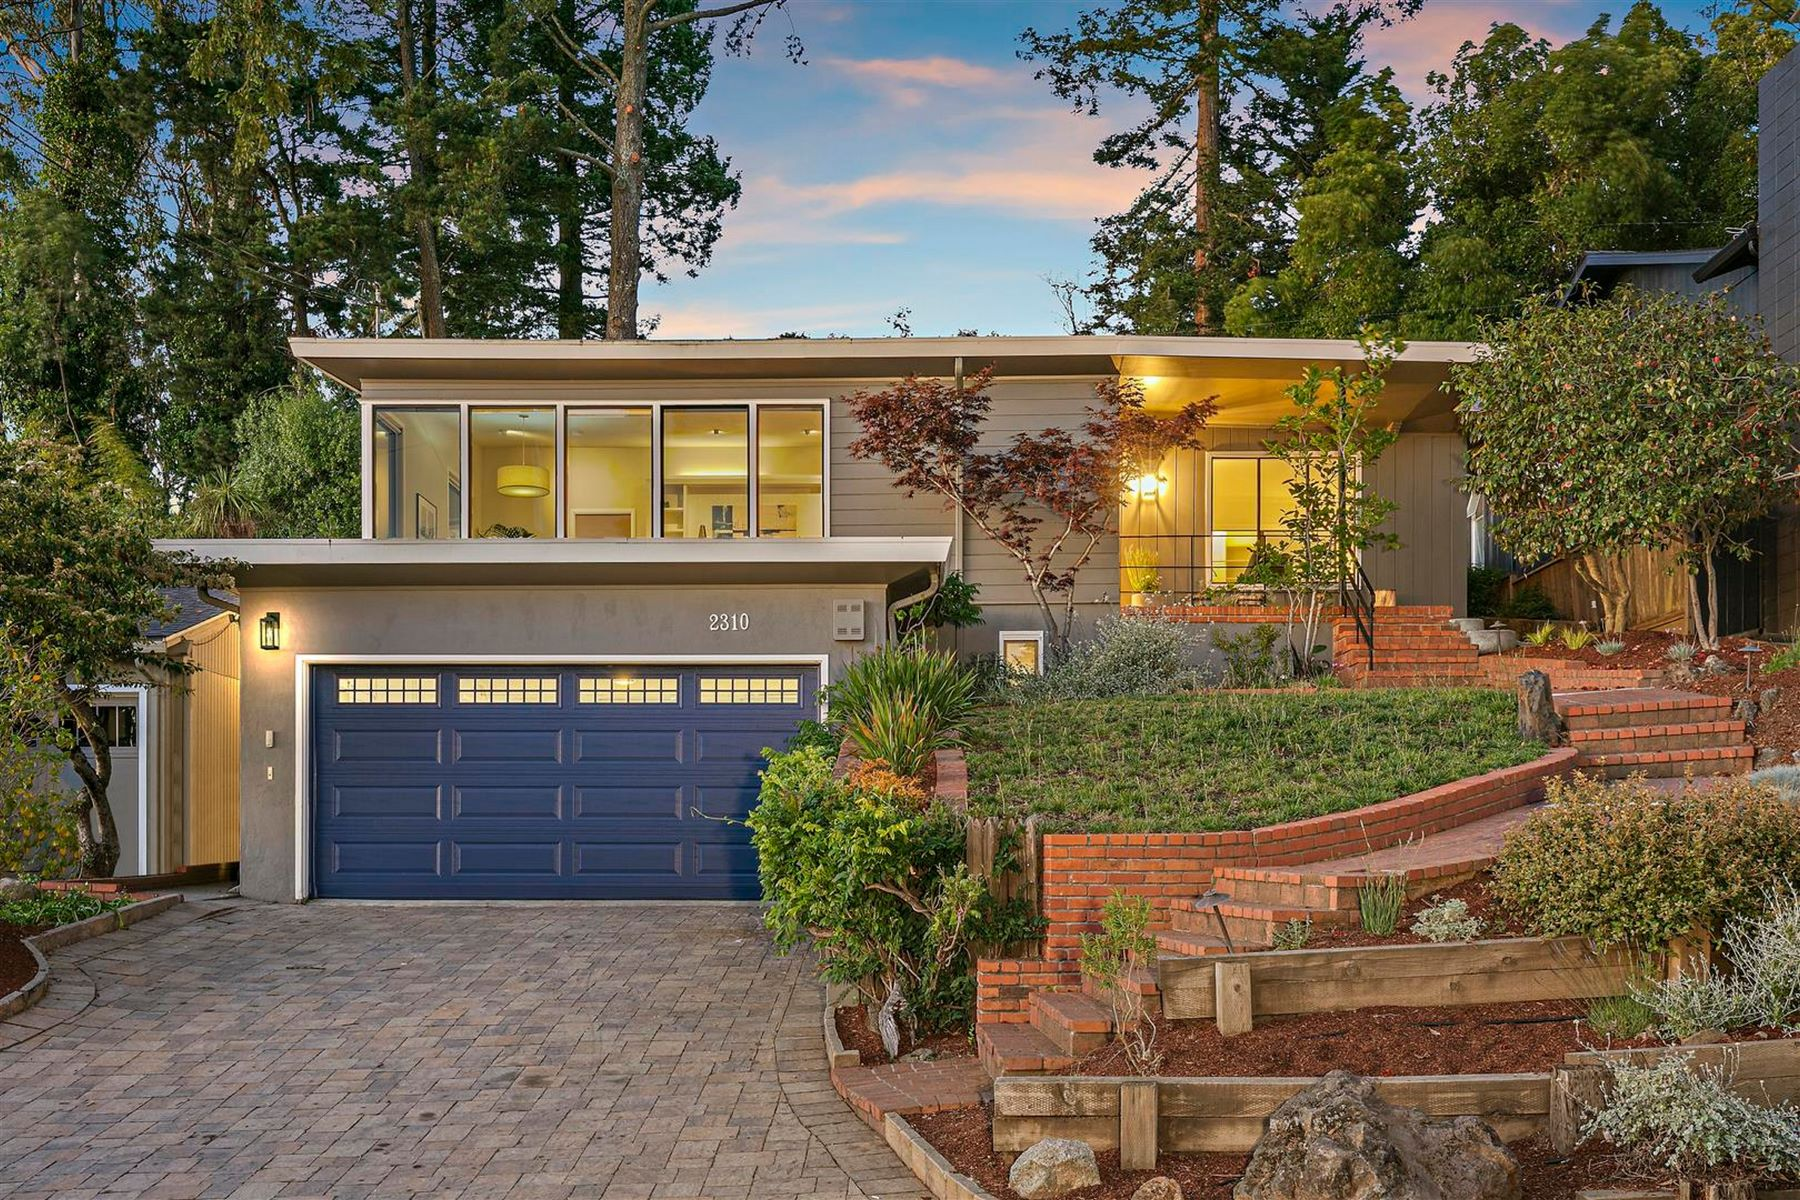 Single Family Homes for Sale at Mid-Century Home With Captivating Views 2310 Thackeray Drive Oakland, California 94611 United States